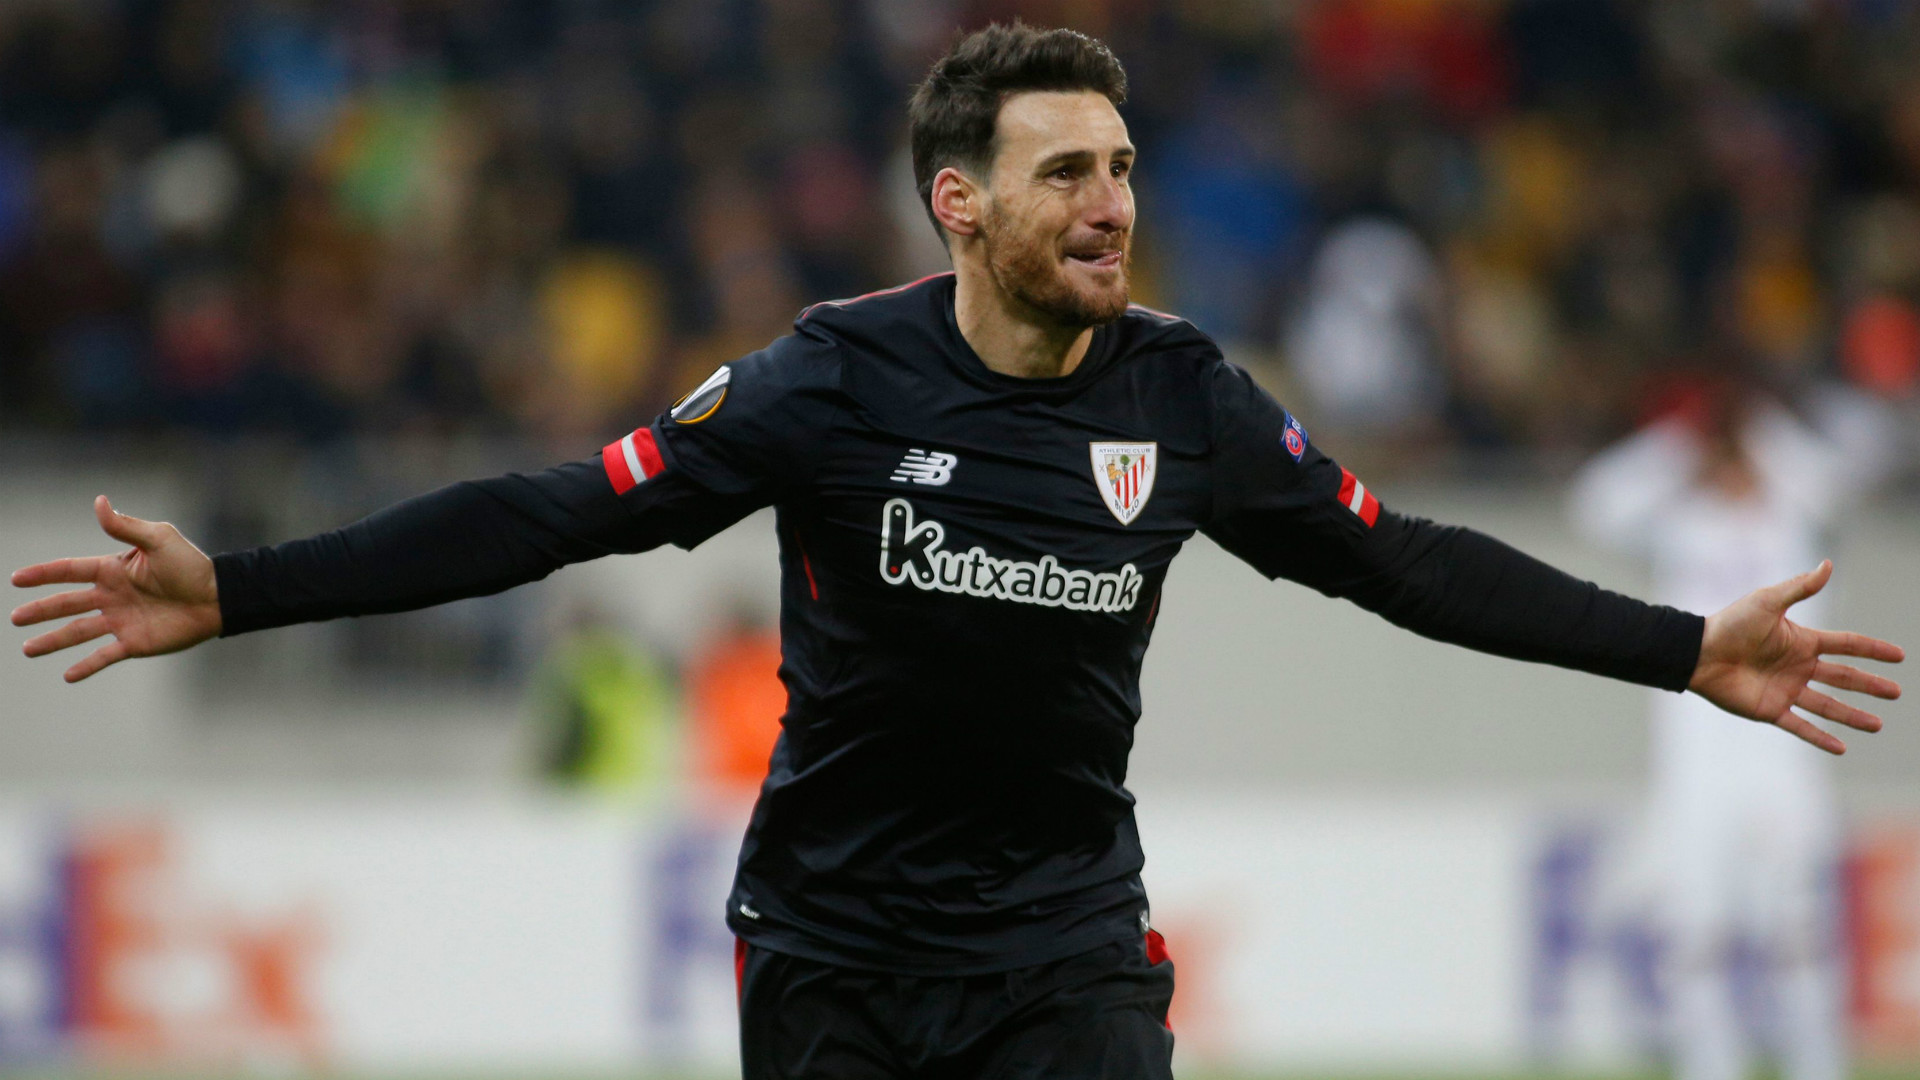 Légende du football basque, Aduriz raccroche à 39 ans